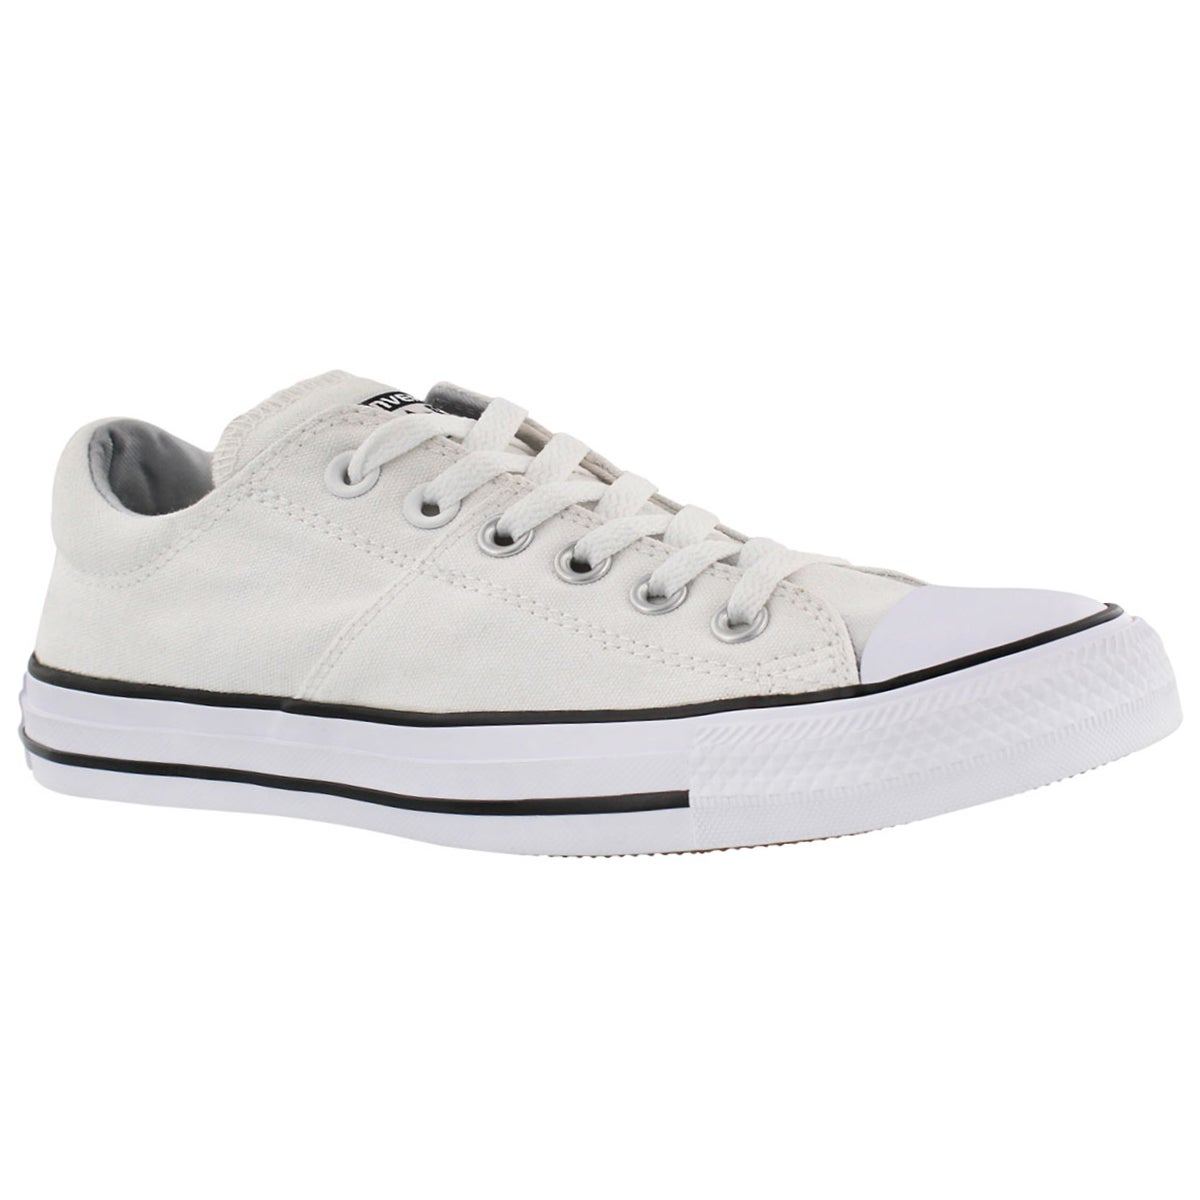 Women's CT ALL STAR MADISON GEOMETRIC wht sneakers